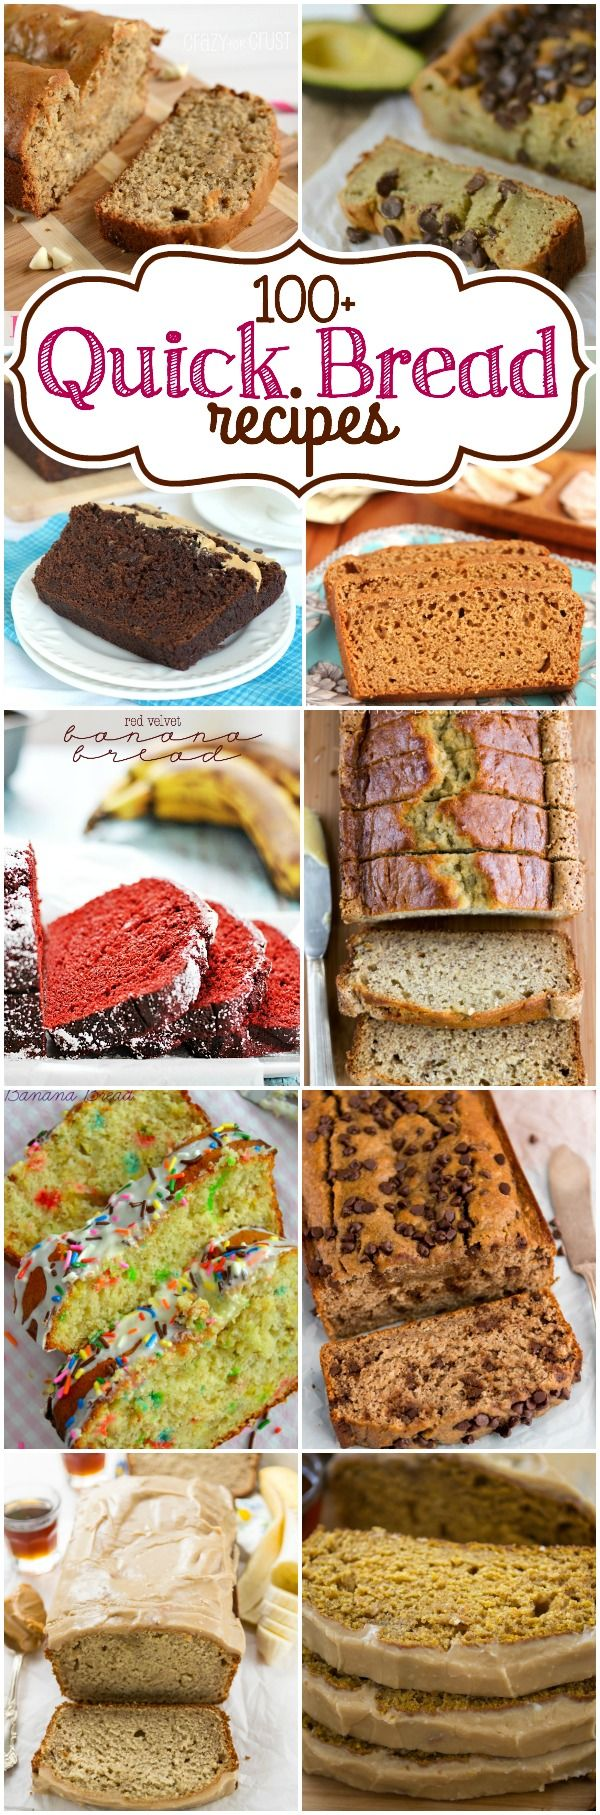 100 quick bread recipes